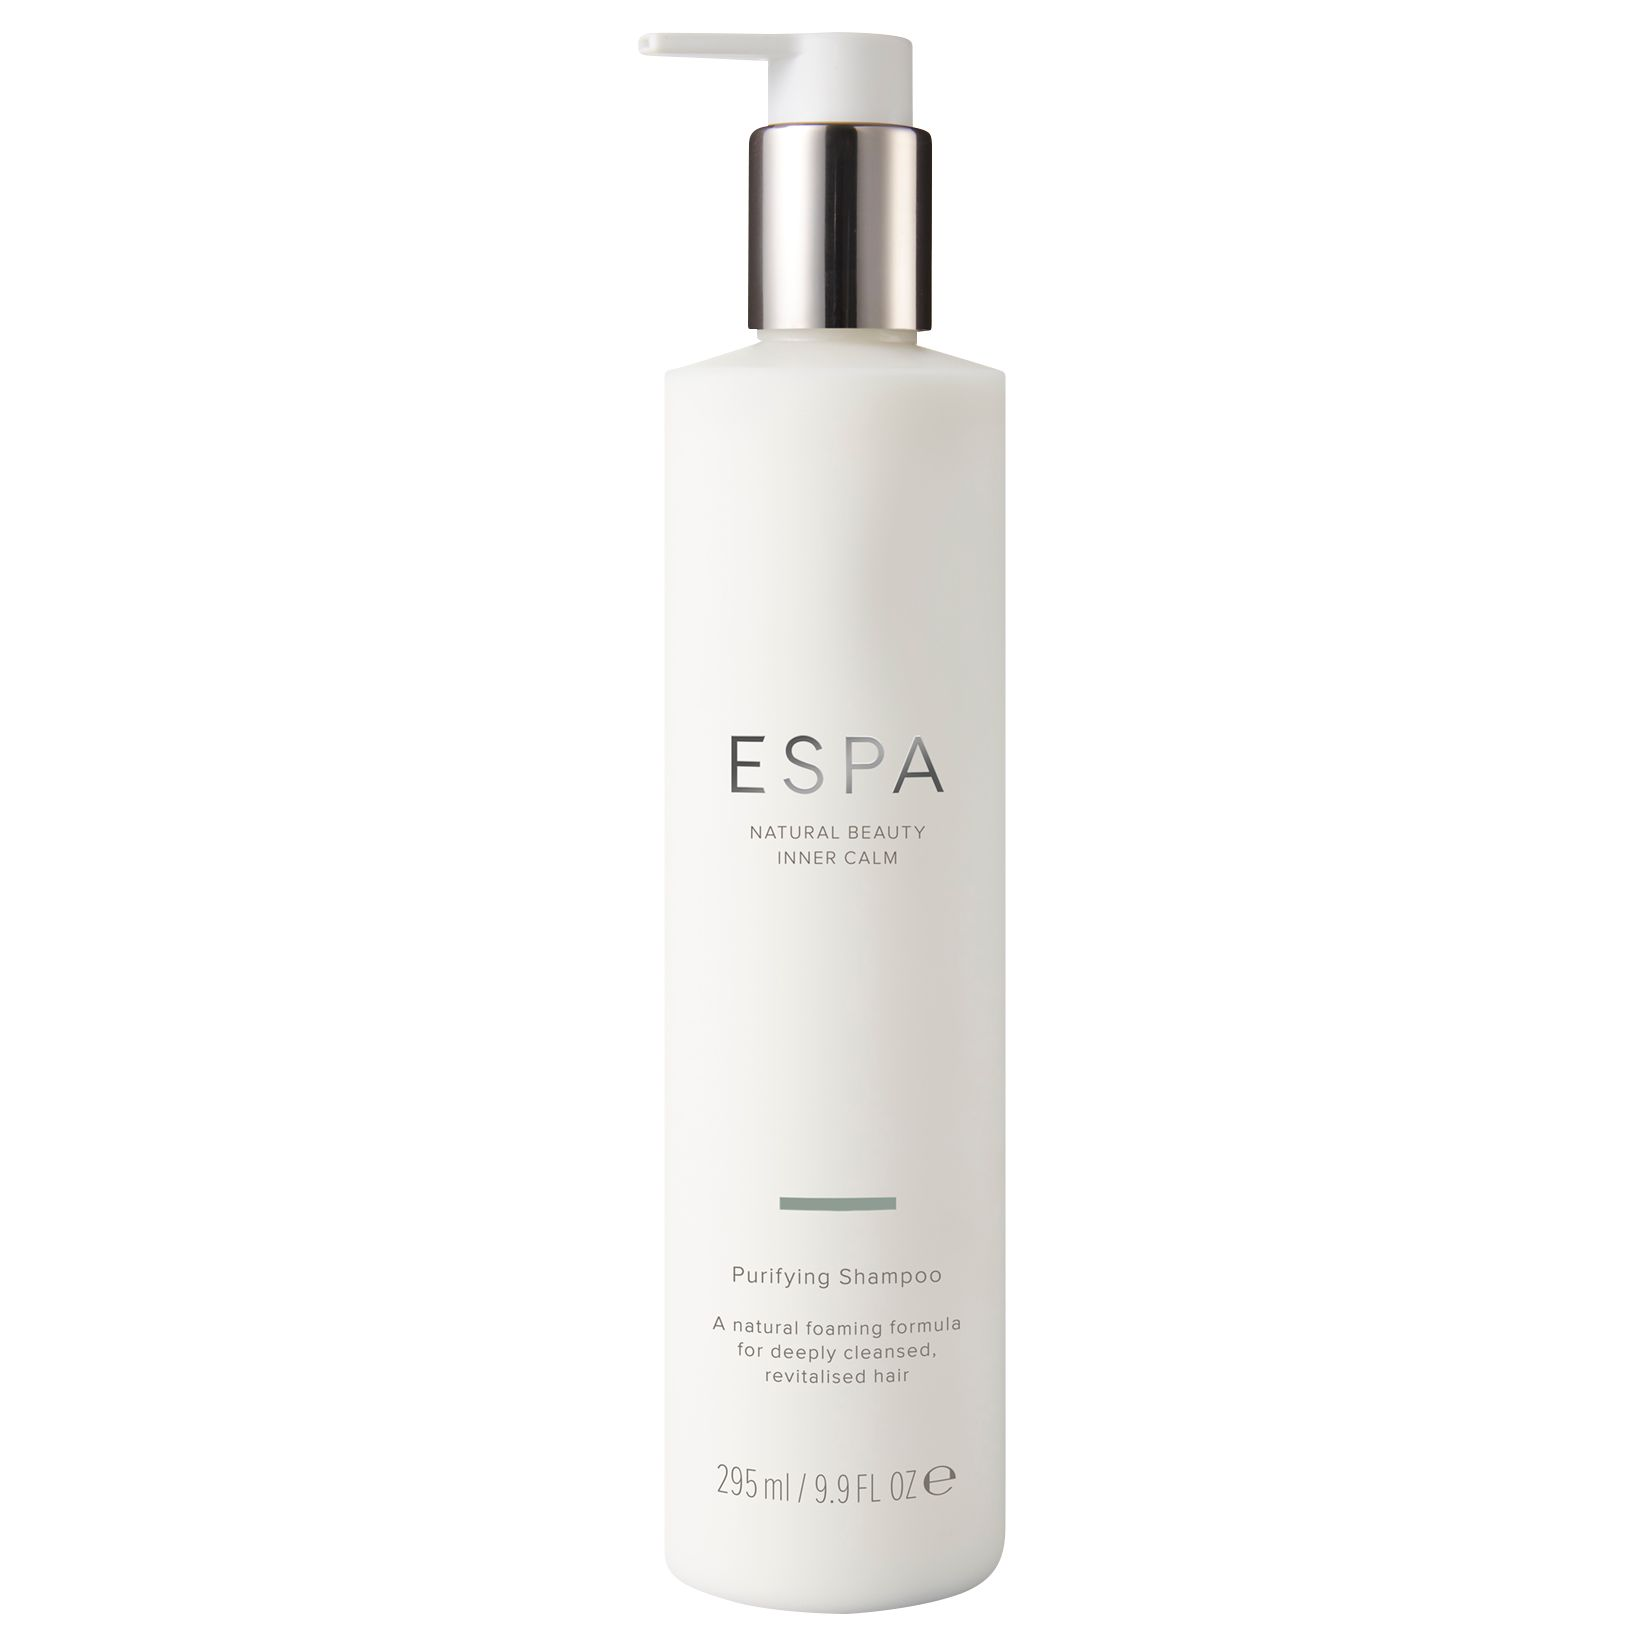 ESPA ESPA Purifying Shampoo, 300ml